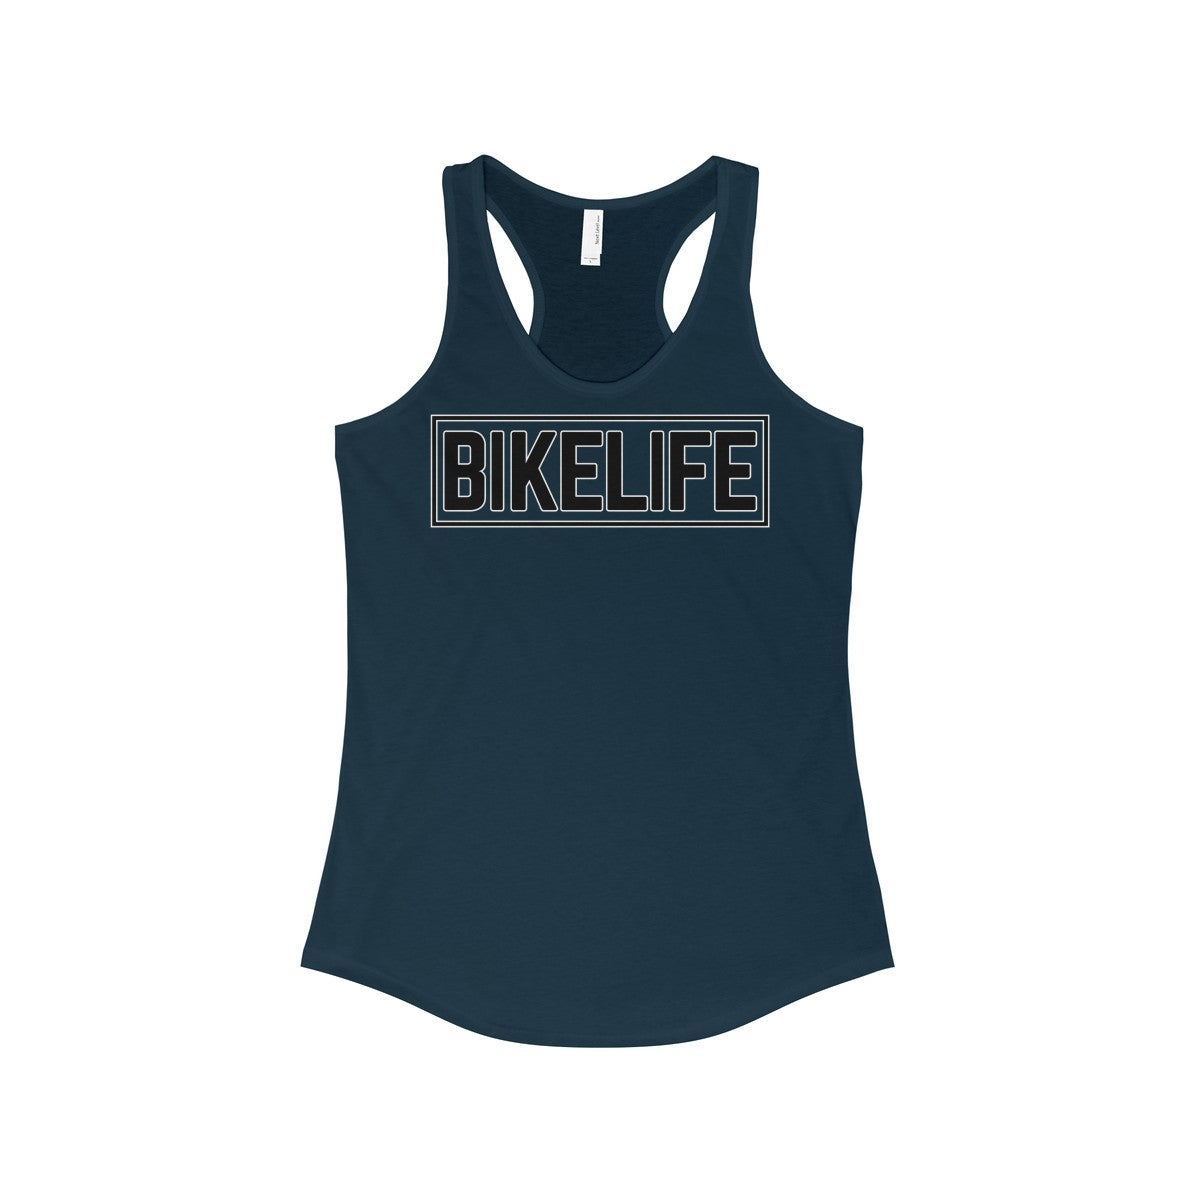 Bike Life Black and White Logo Women's Racerback Tank